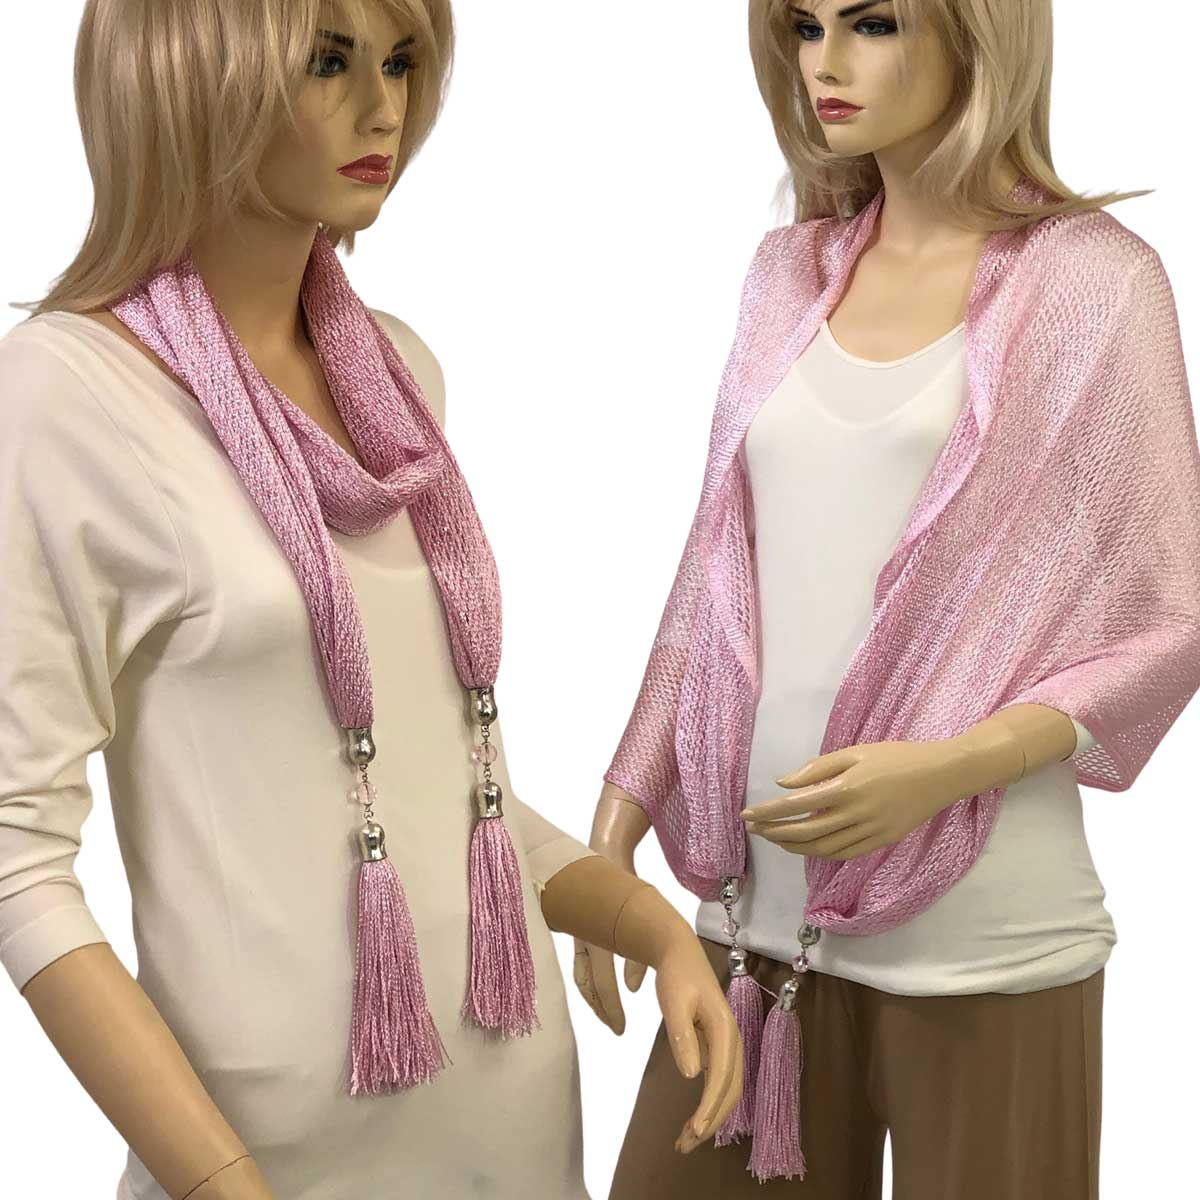 Oblong Scarves - Metallic w/ Jewelry MFNJ - Fishnet - Light Pink (#7)